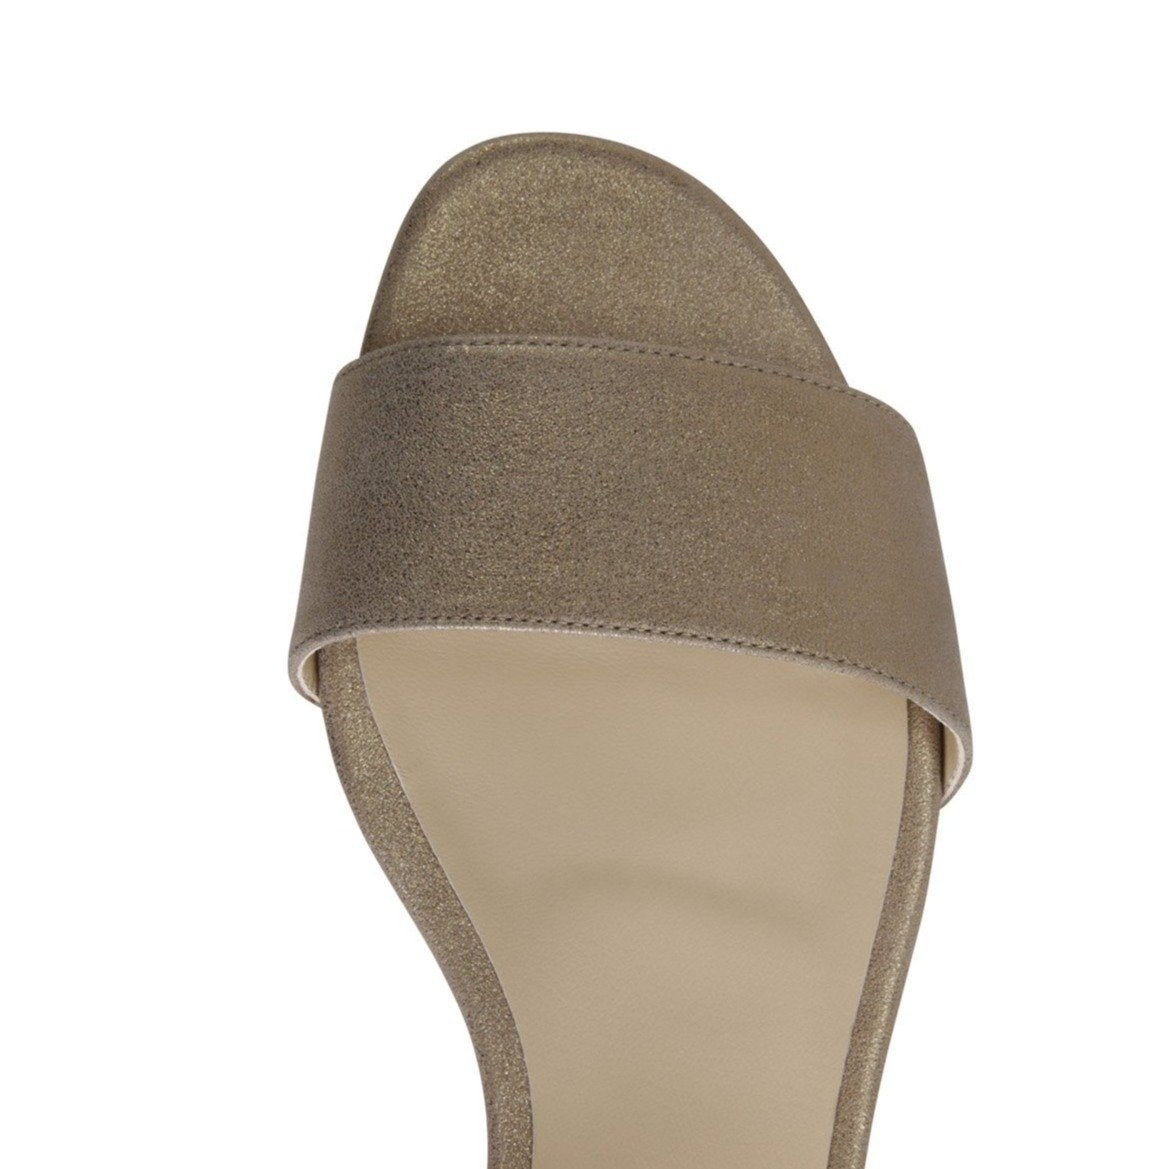 LUCCA - Burma Nudo, VIAJIYU - Women's Hand Made Sustainable Luxury Shoes. Made in Italy. Made to Order.